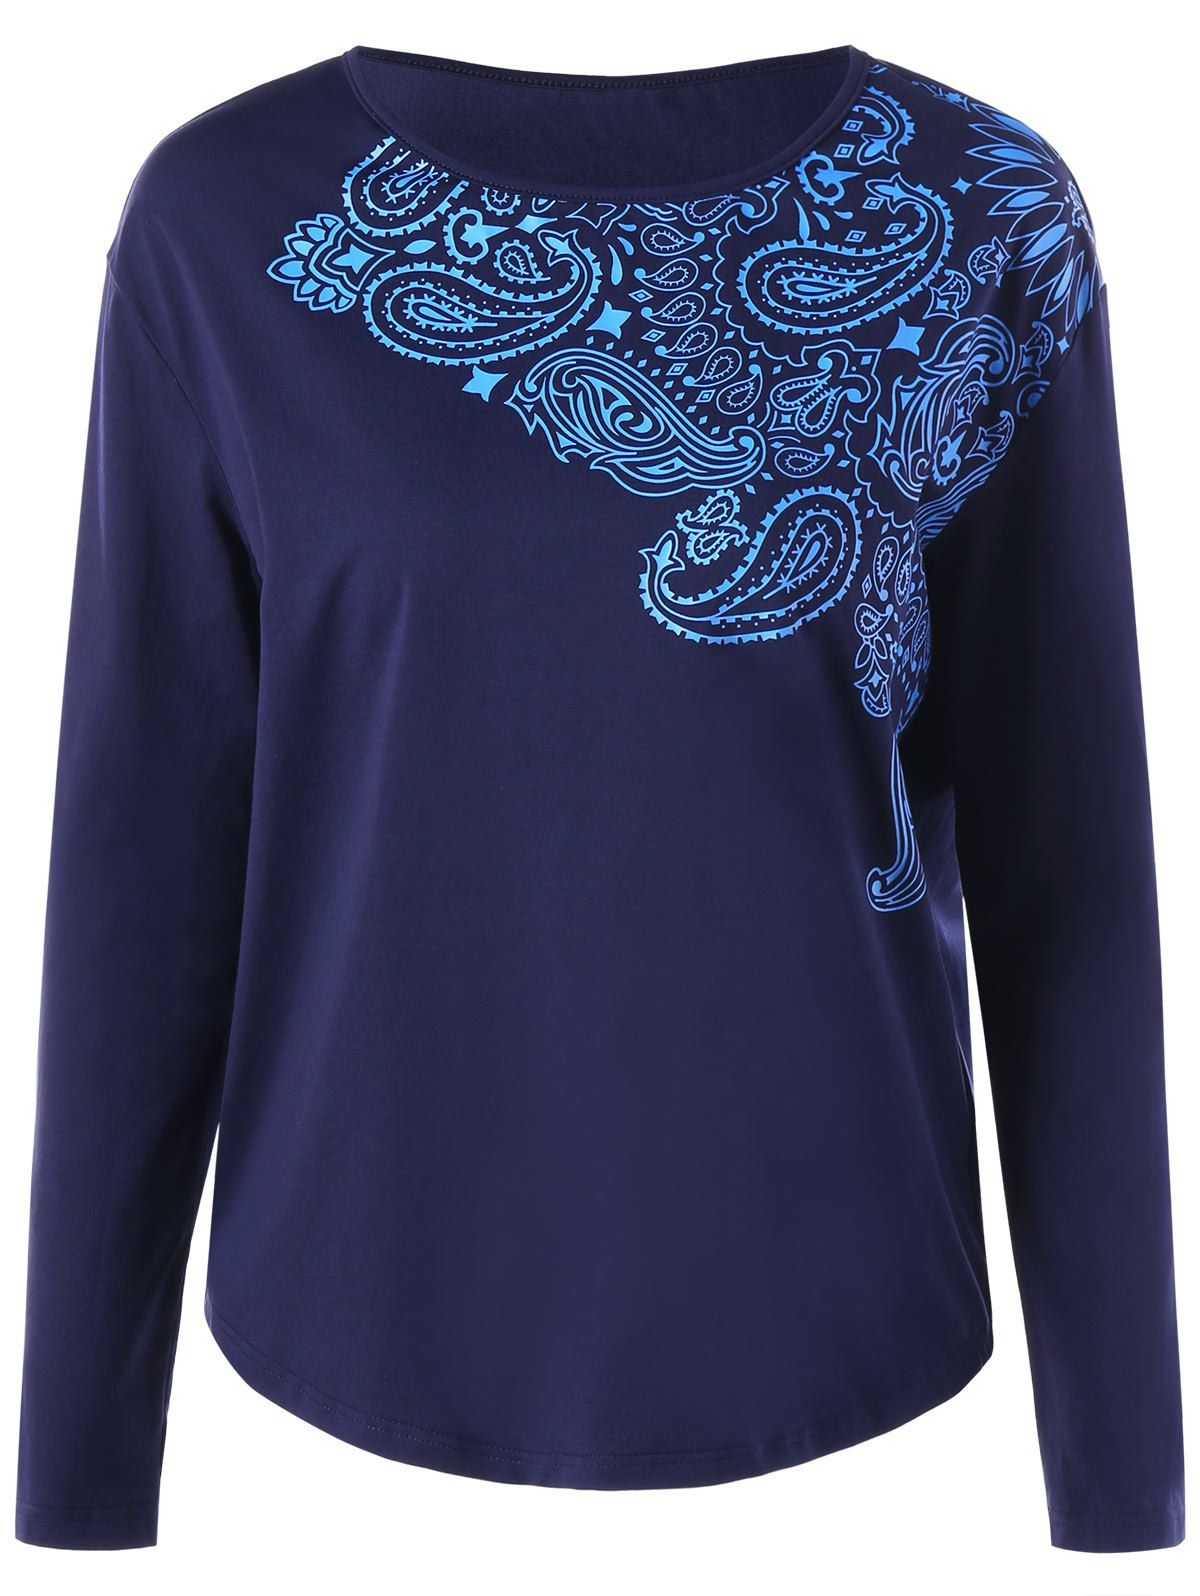 Paisley Print Long Sleeve Top - DEEP BLUE XL